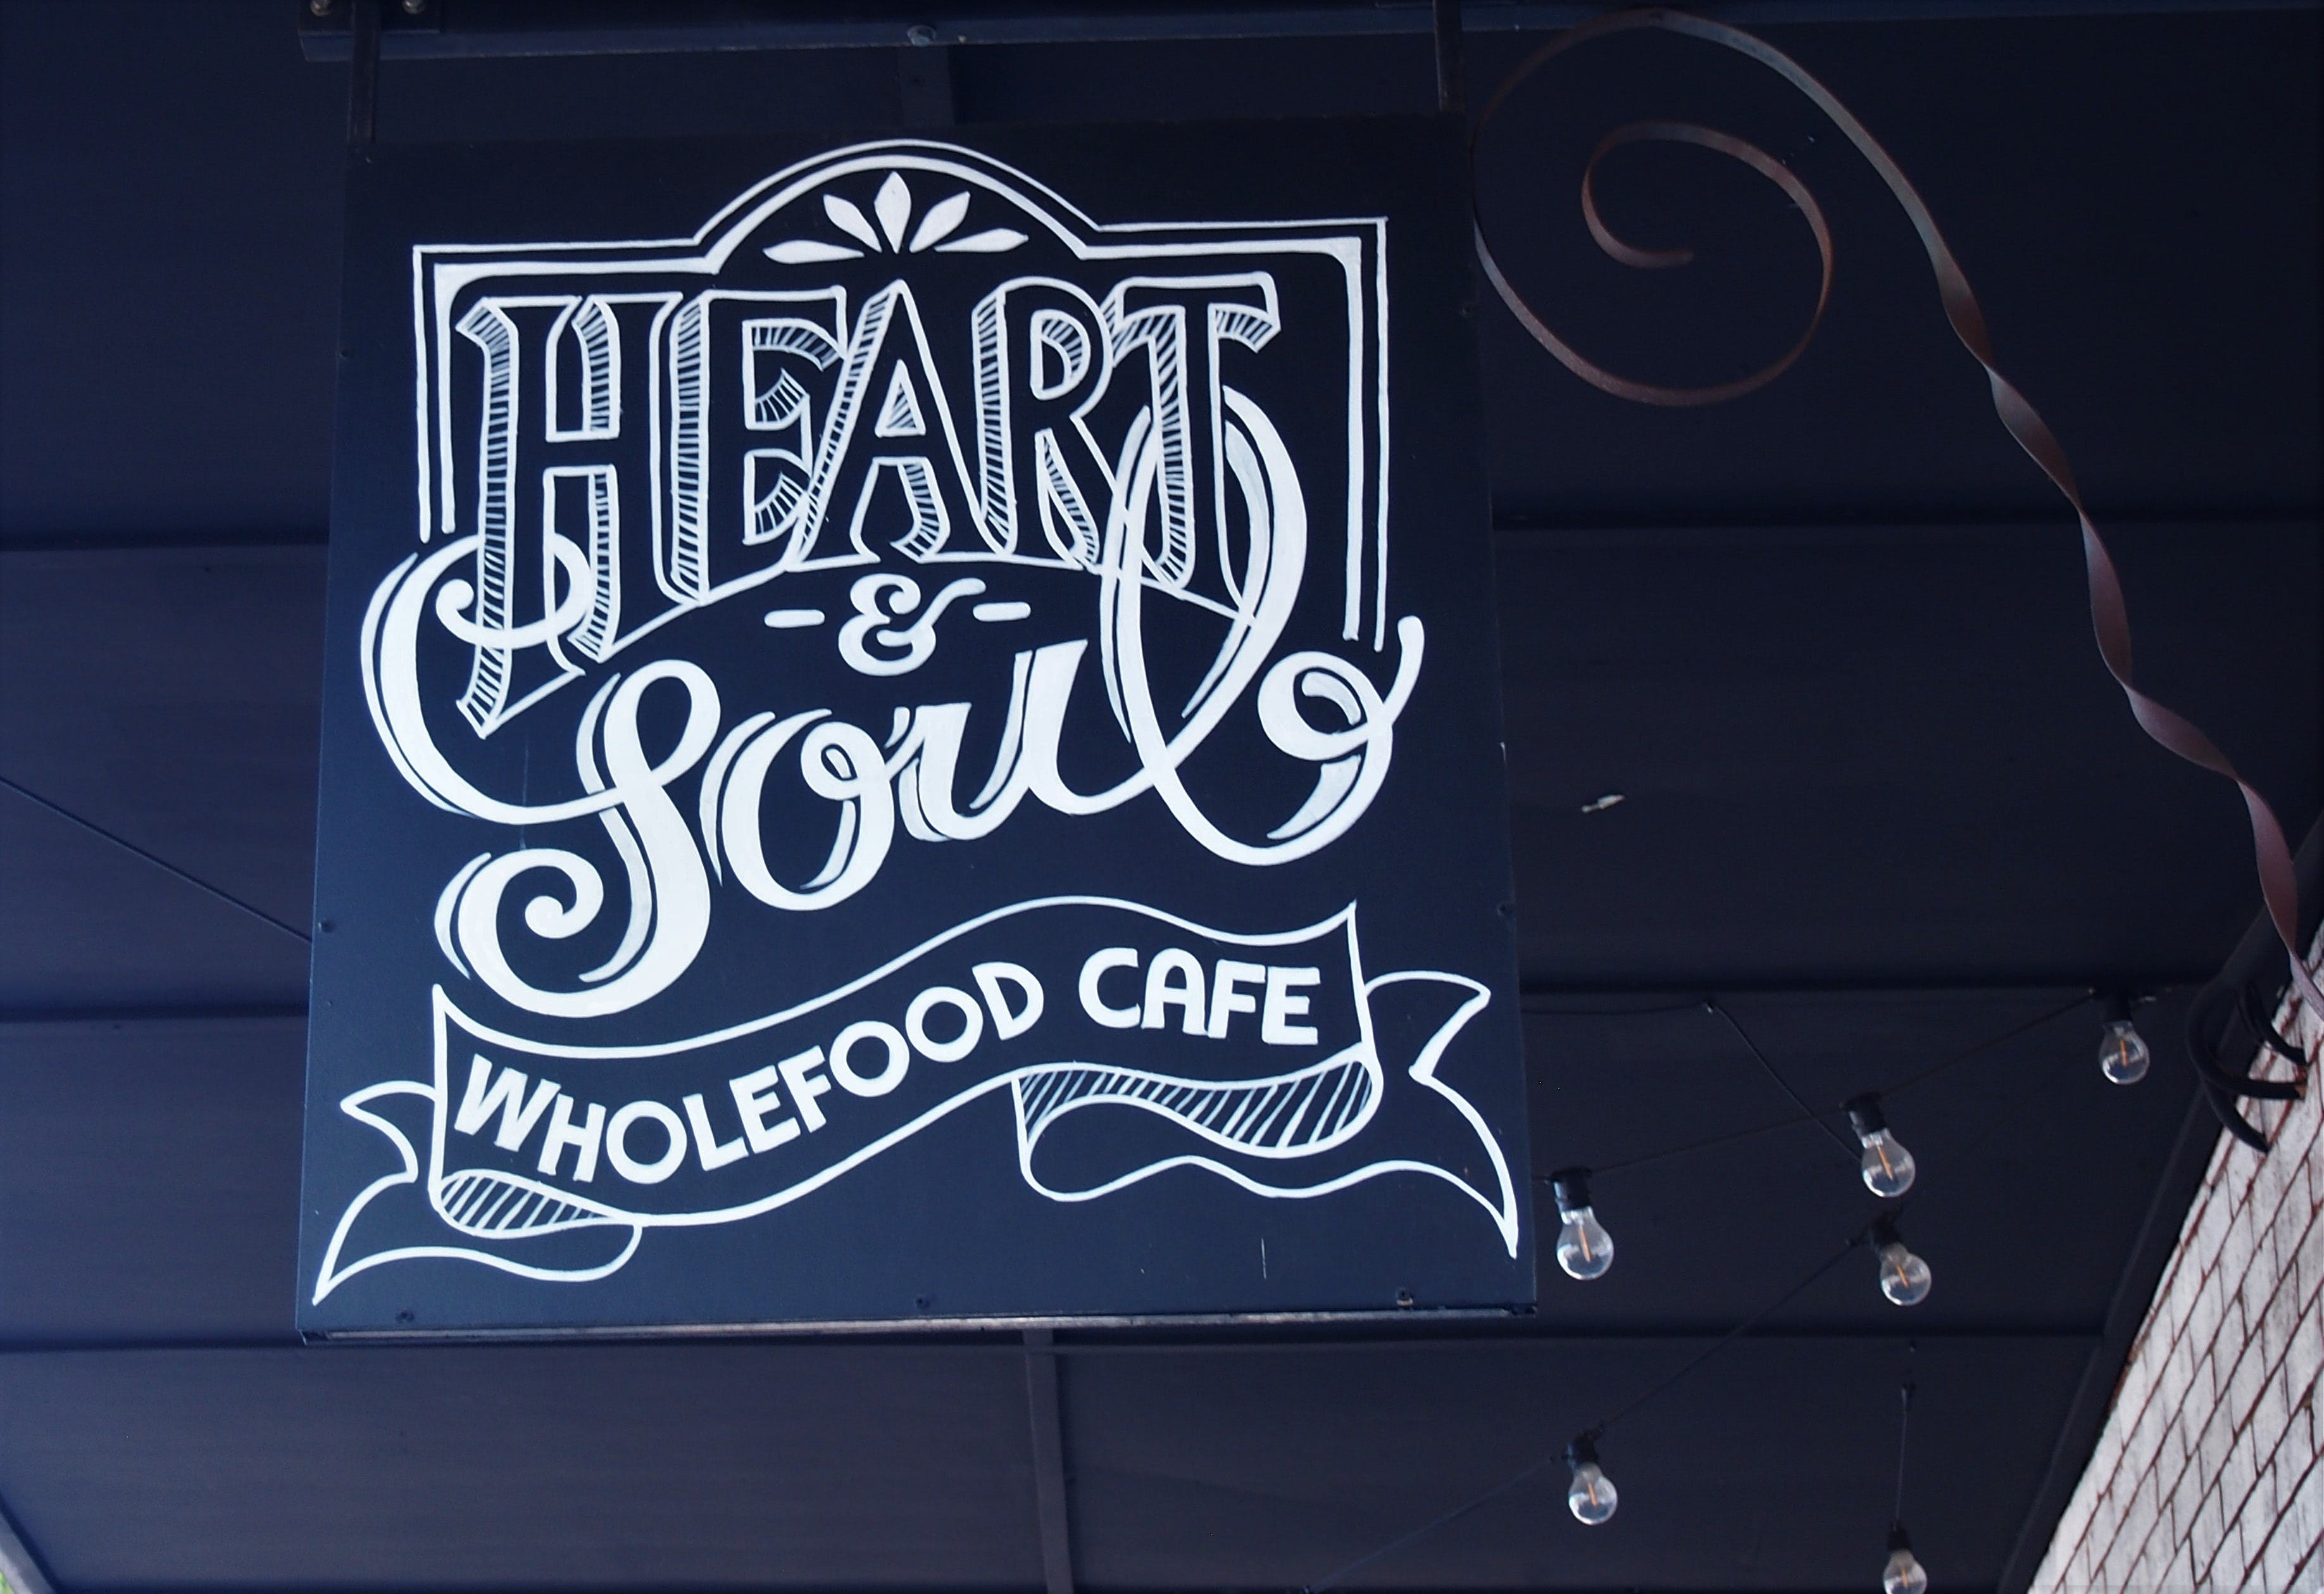 Heart and Soul Wholefood Cafe - Pubs and Clubs